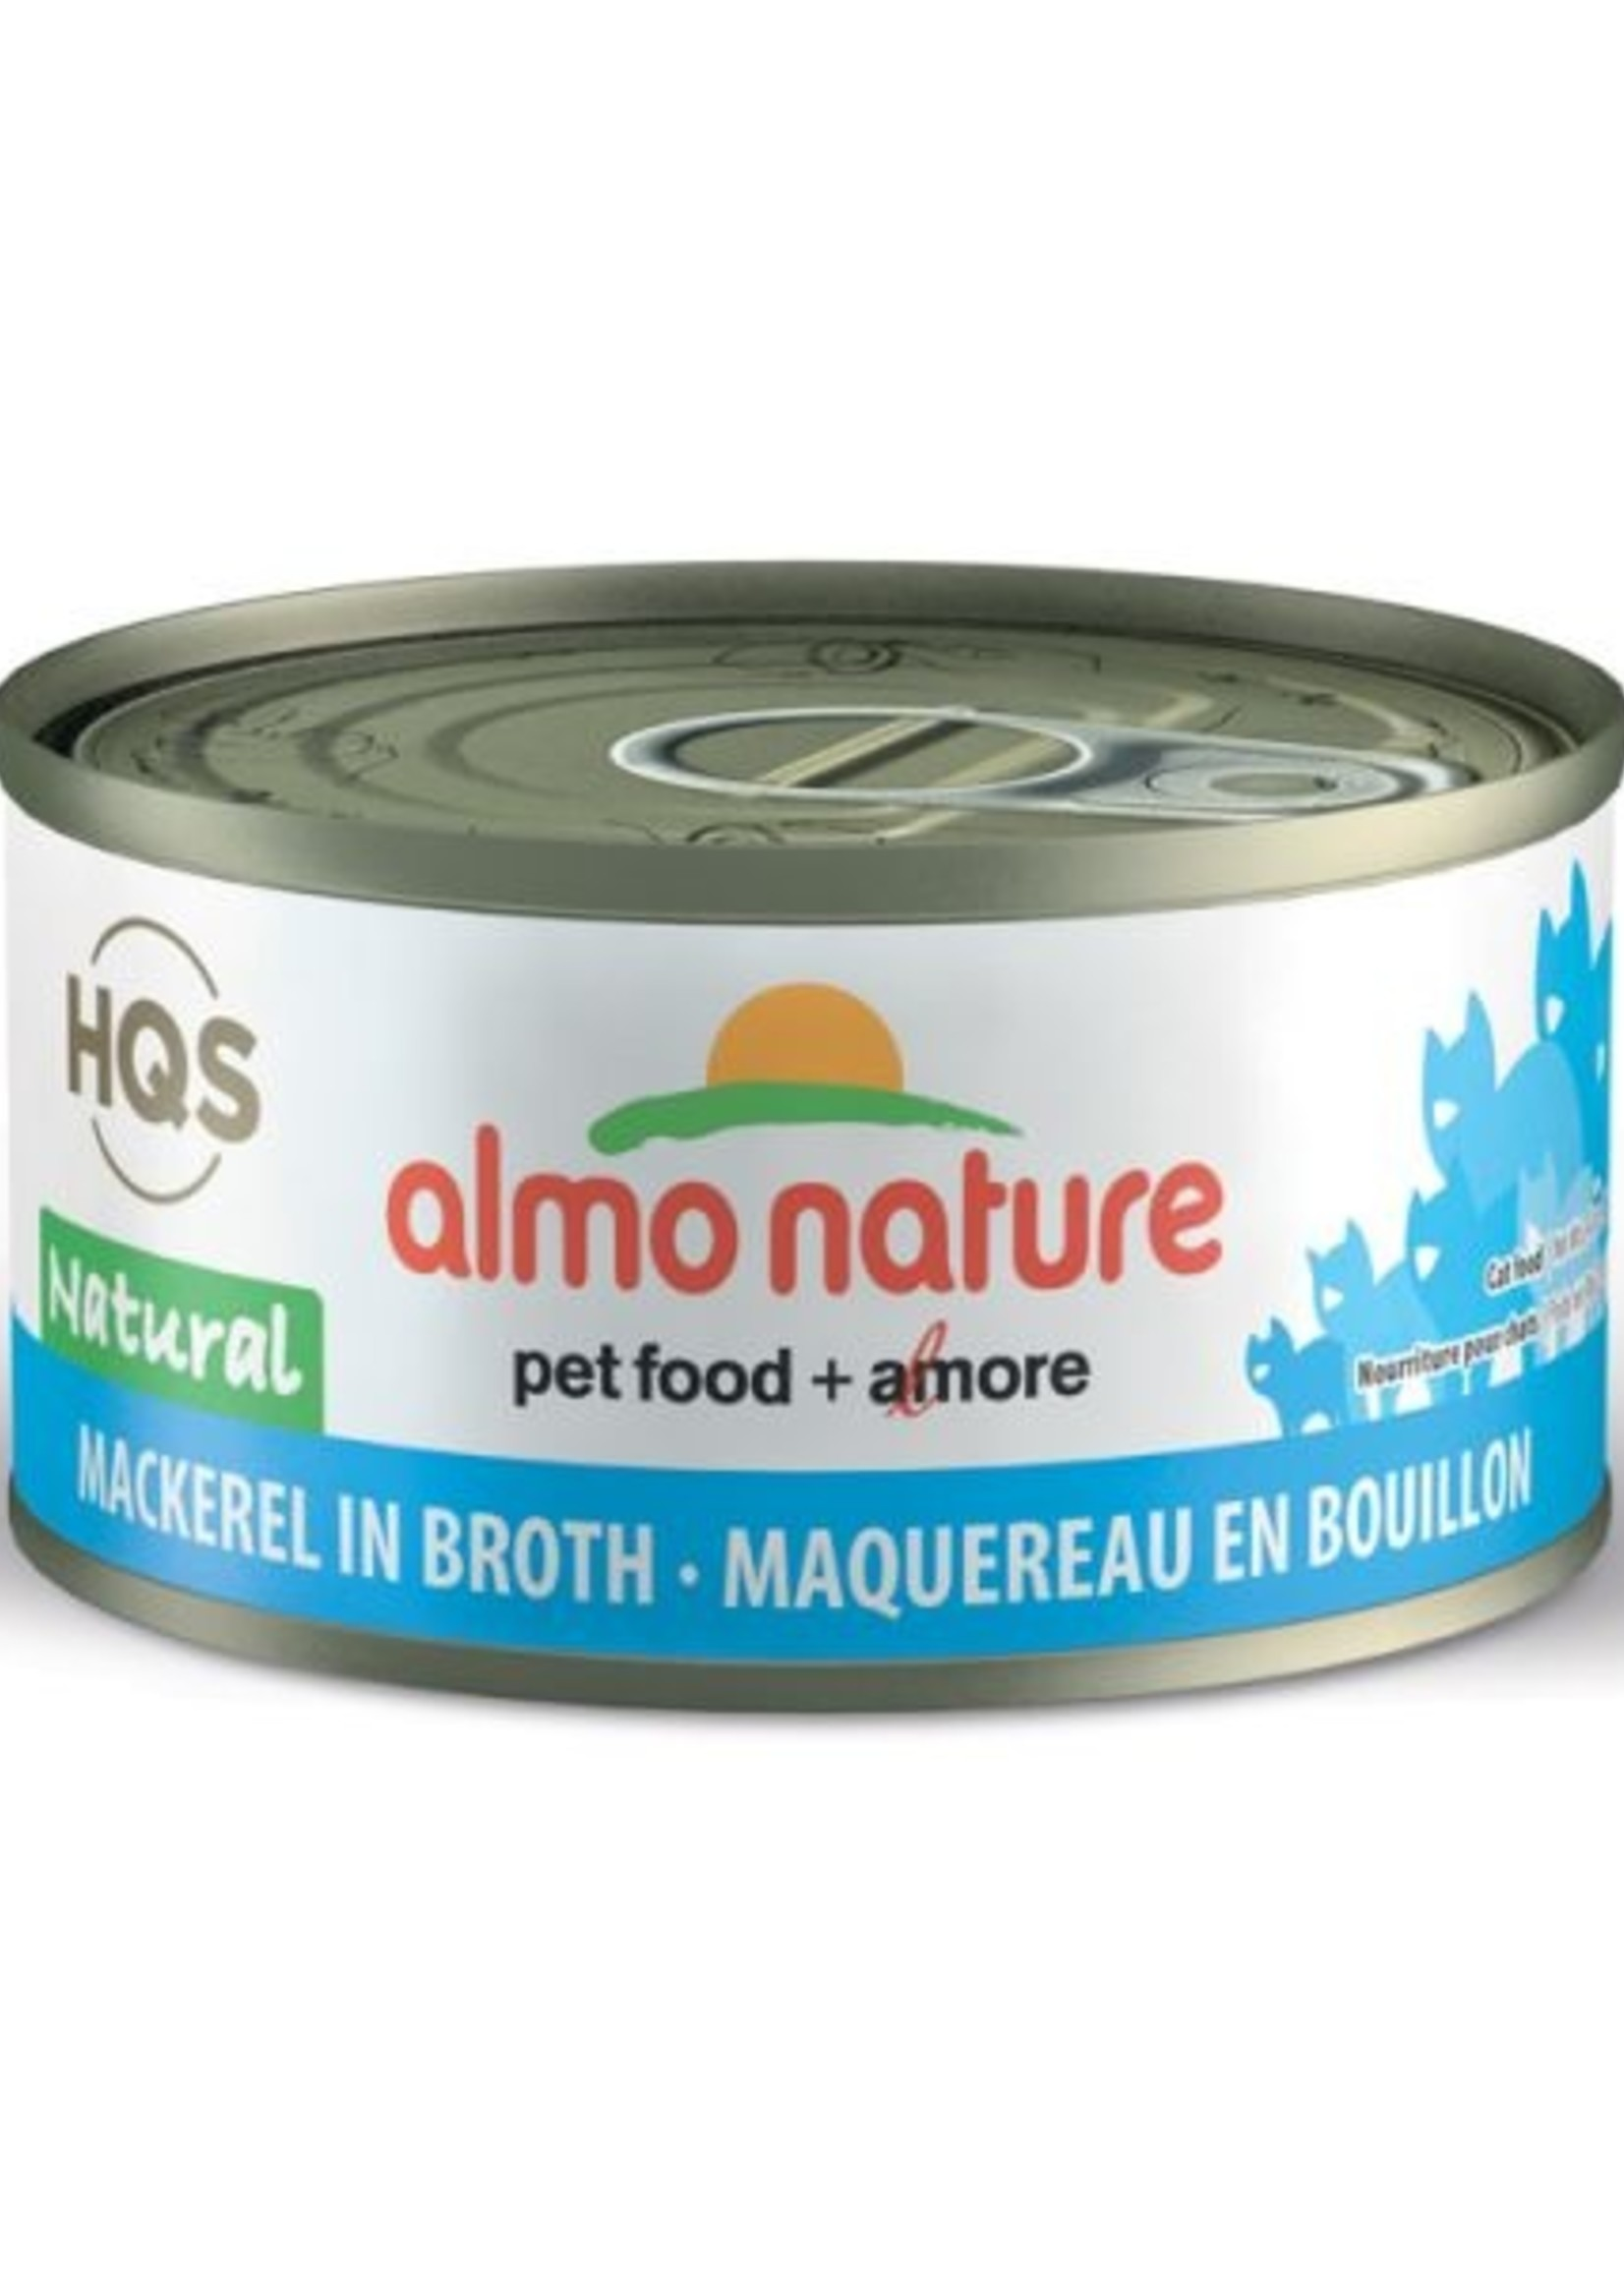 Almo Nature© Almo Nature HQS Natural Mackerel in Broth 70g